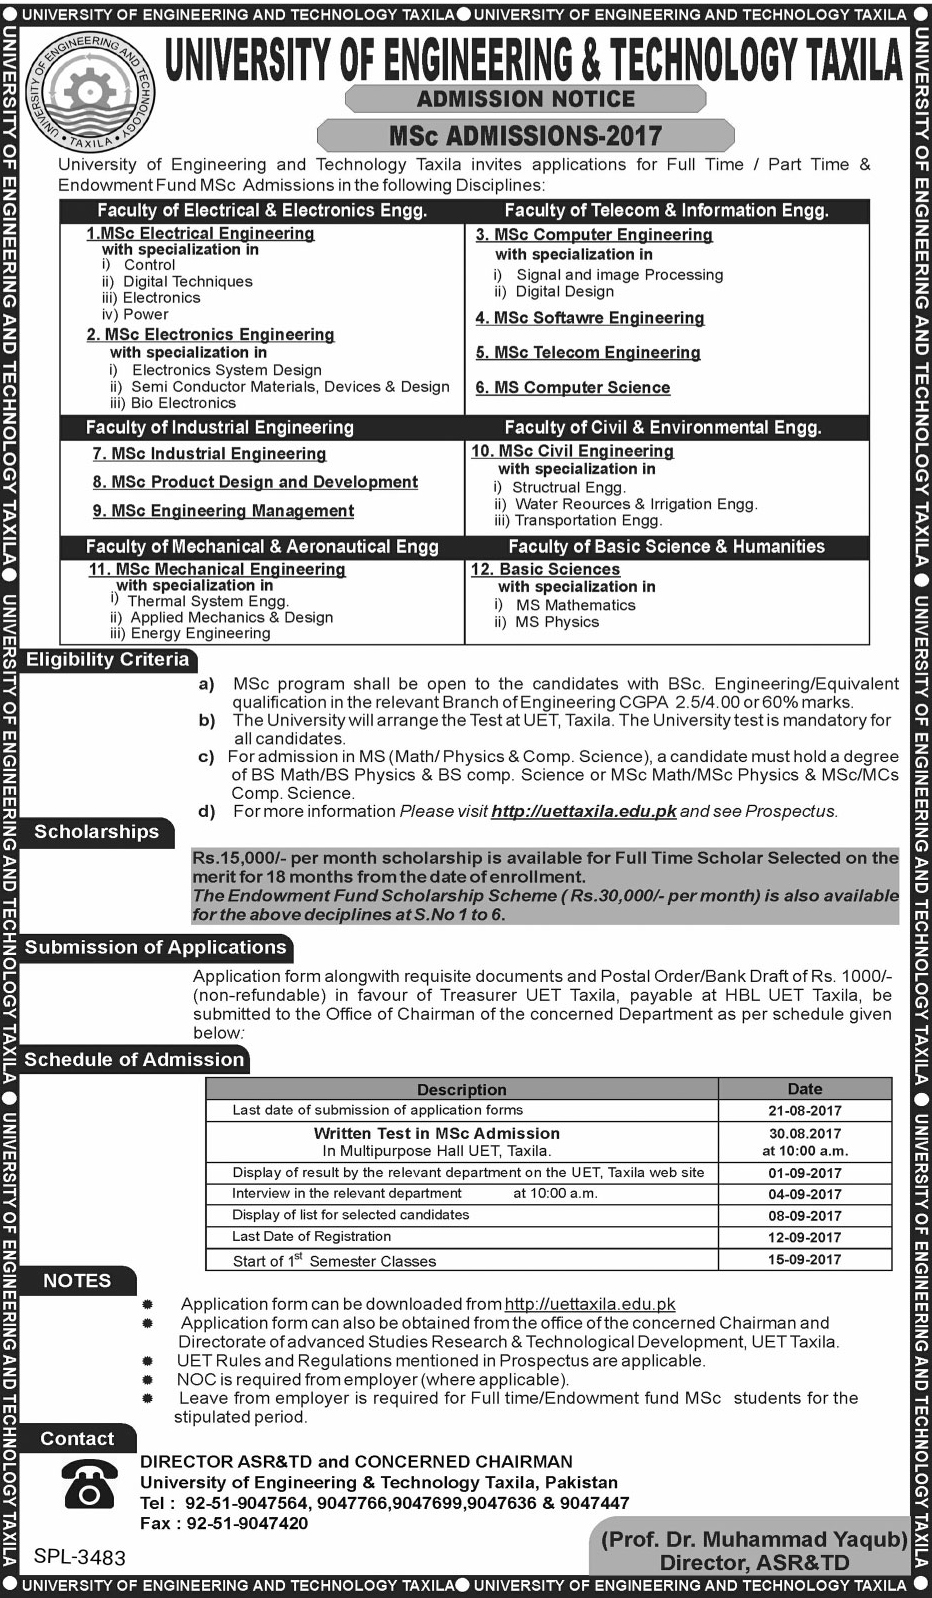 UET Taxila MSc Admissions 2017 Form Schedule, Entry Test Date